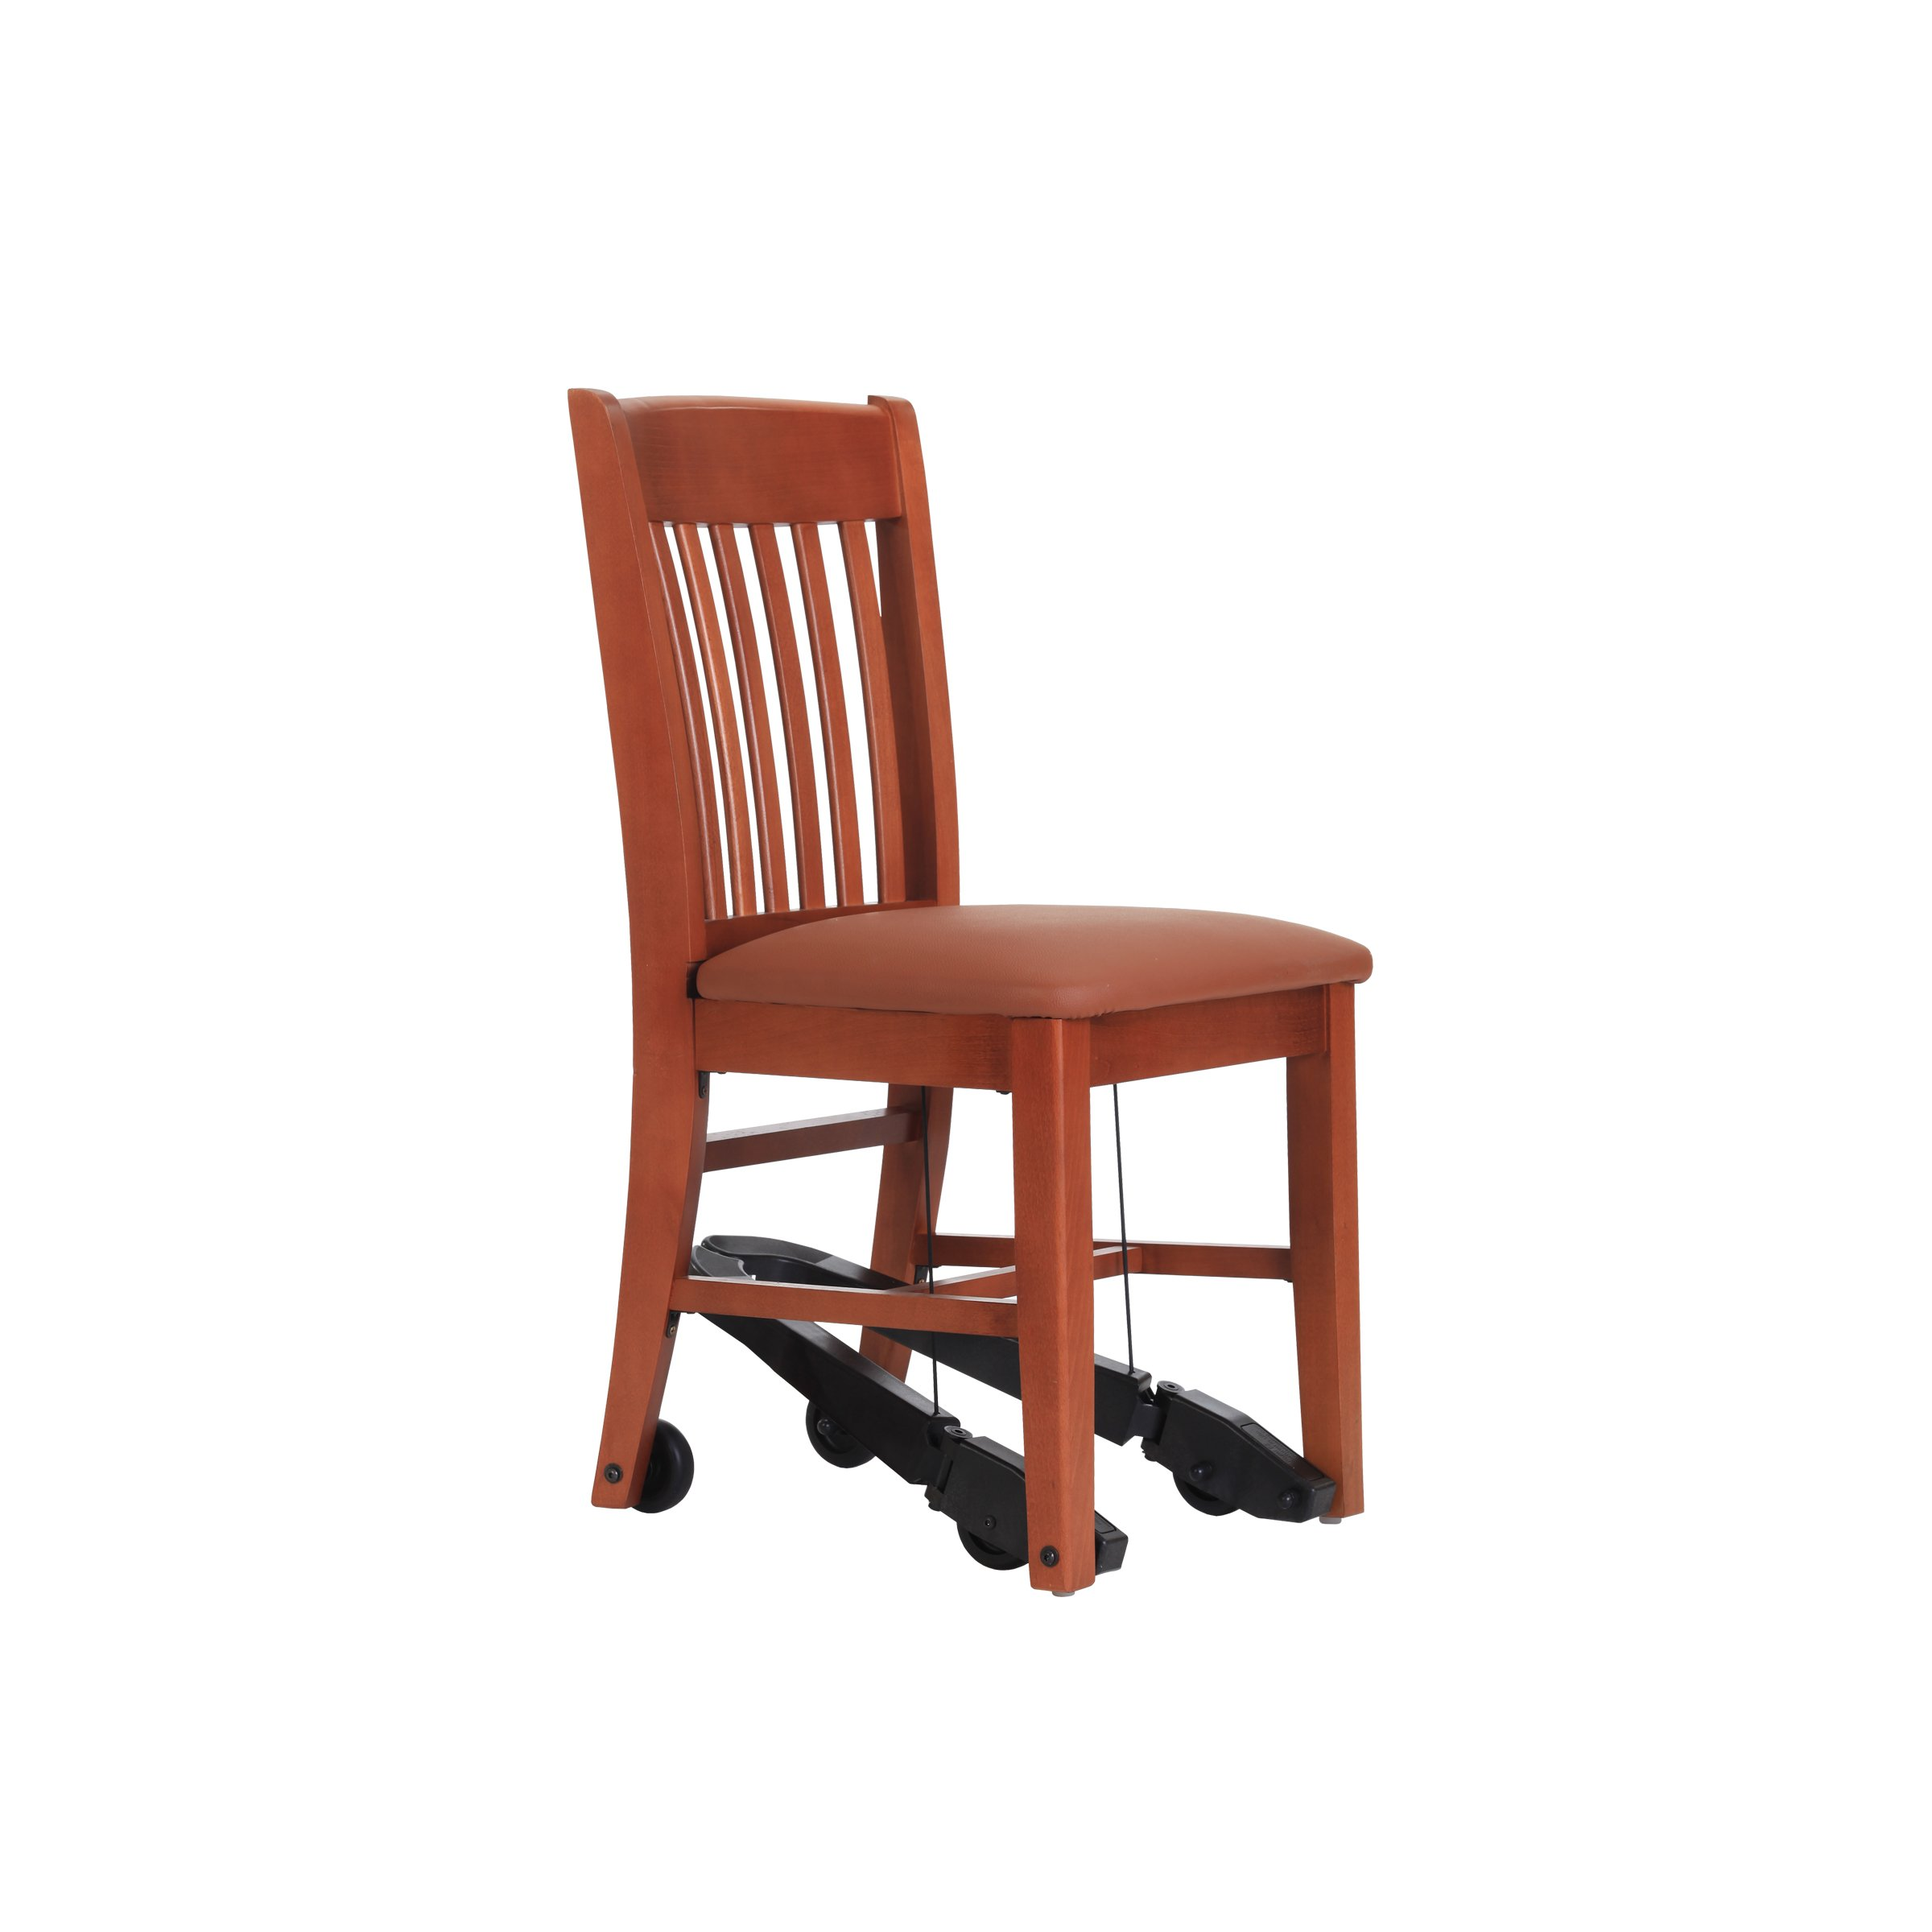 Living Made EZ LMZ-60-5368 Dining Chair with Mobility Assist Lever, Wood Frame, Saddle, 18 Inch Width by Living Made EZ